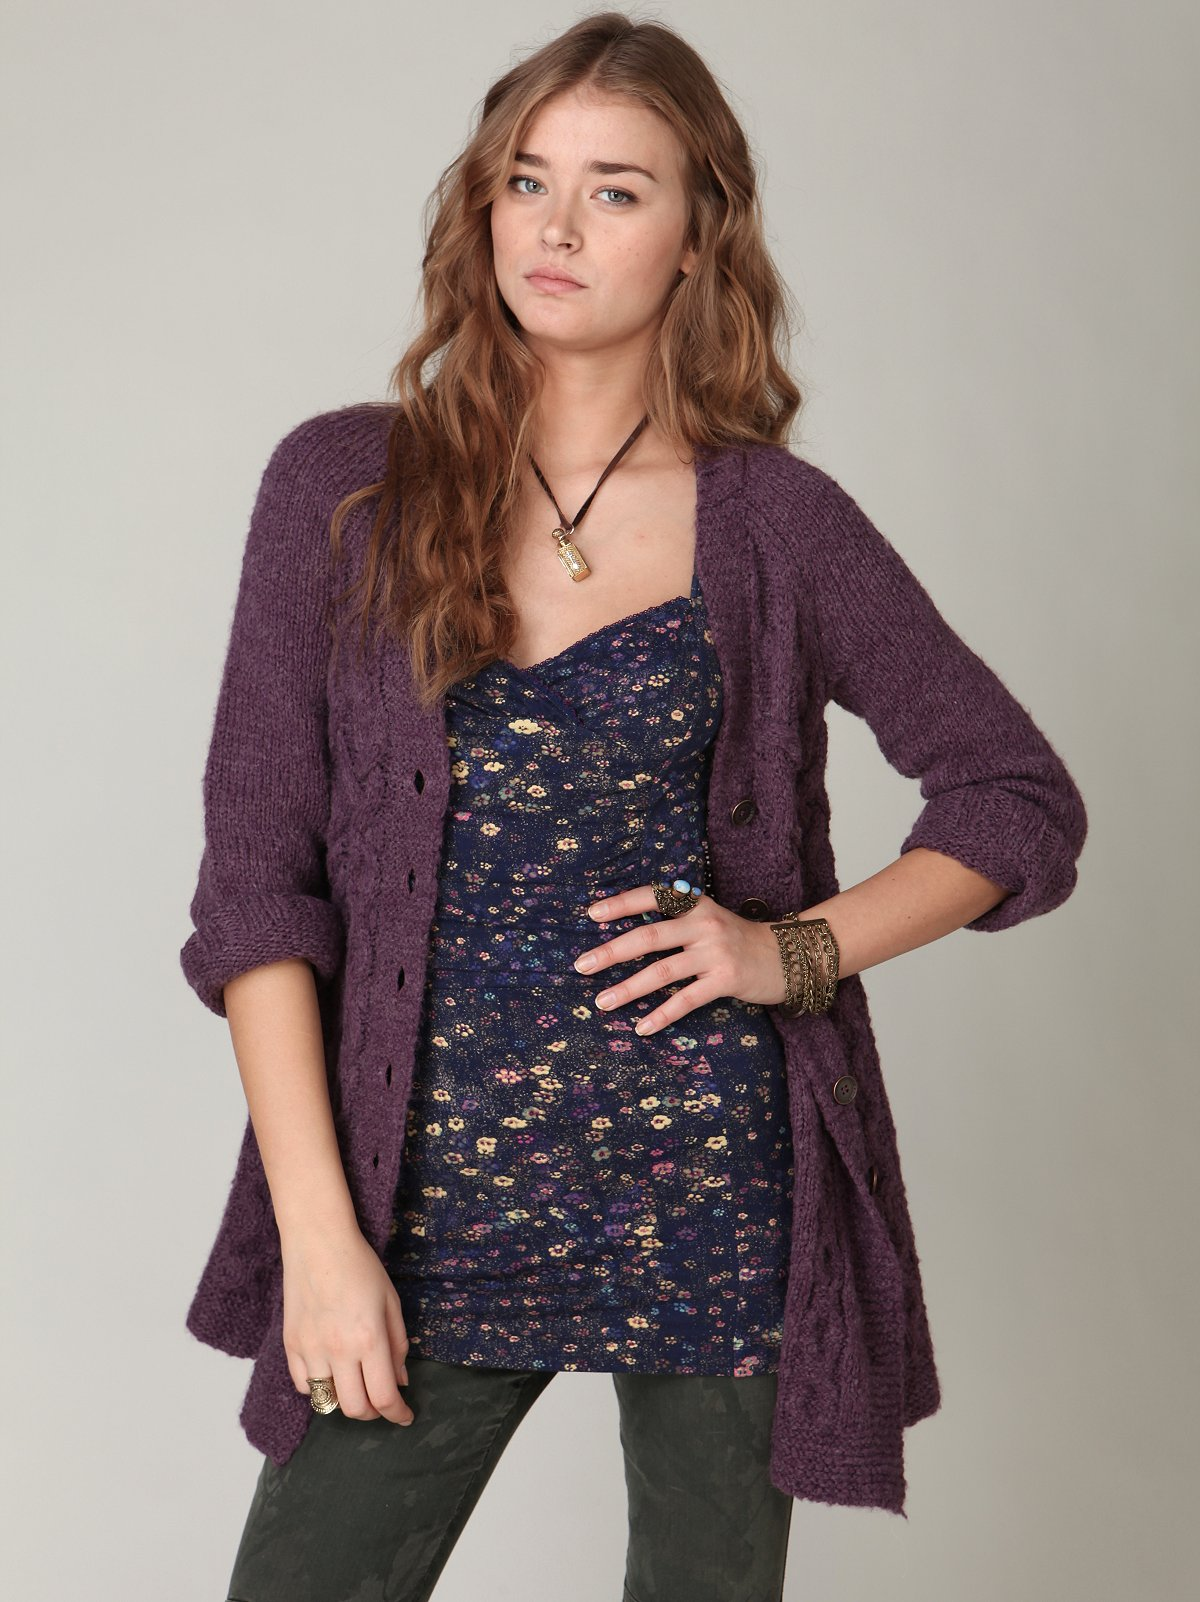 Branched Cable Cardigan